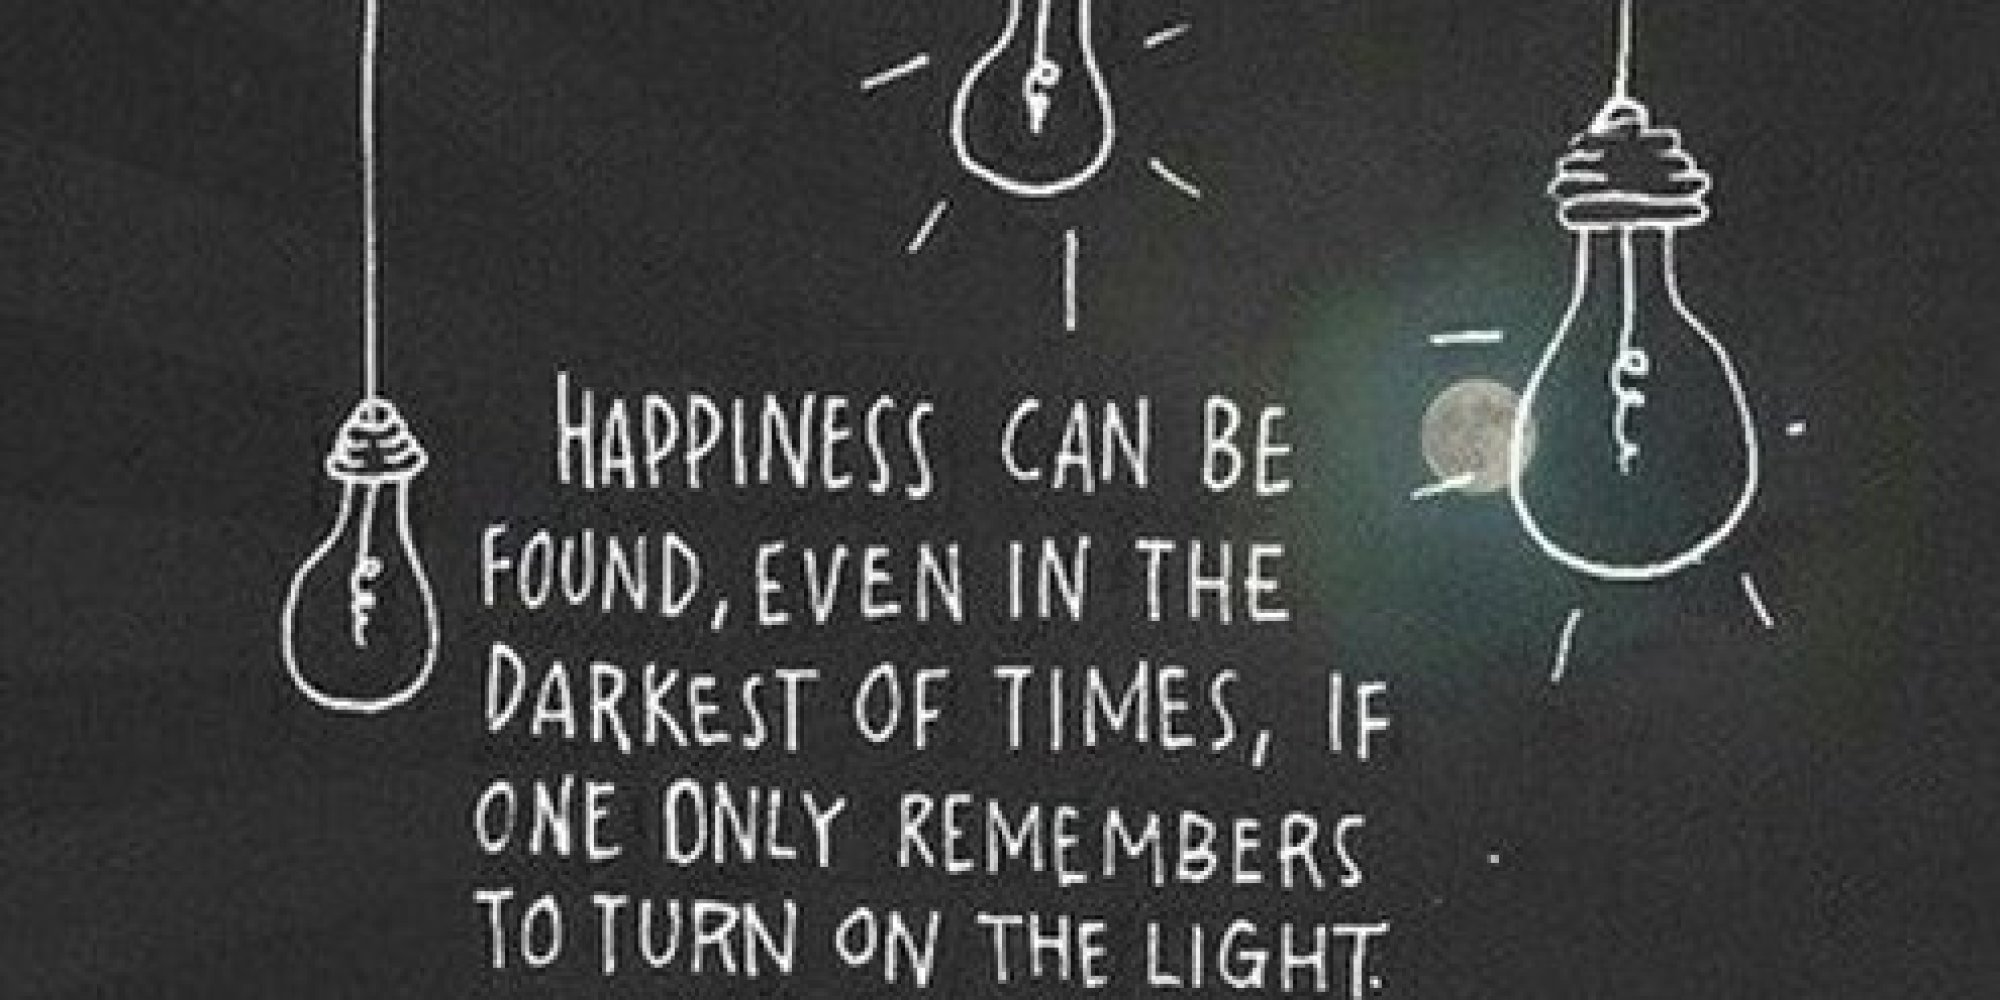 Happiness Quotes On Tumblr: #HappinessMonth: 15 Quotes About Happiness That'll Turn